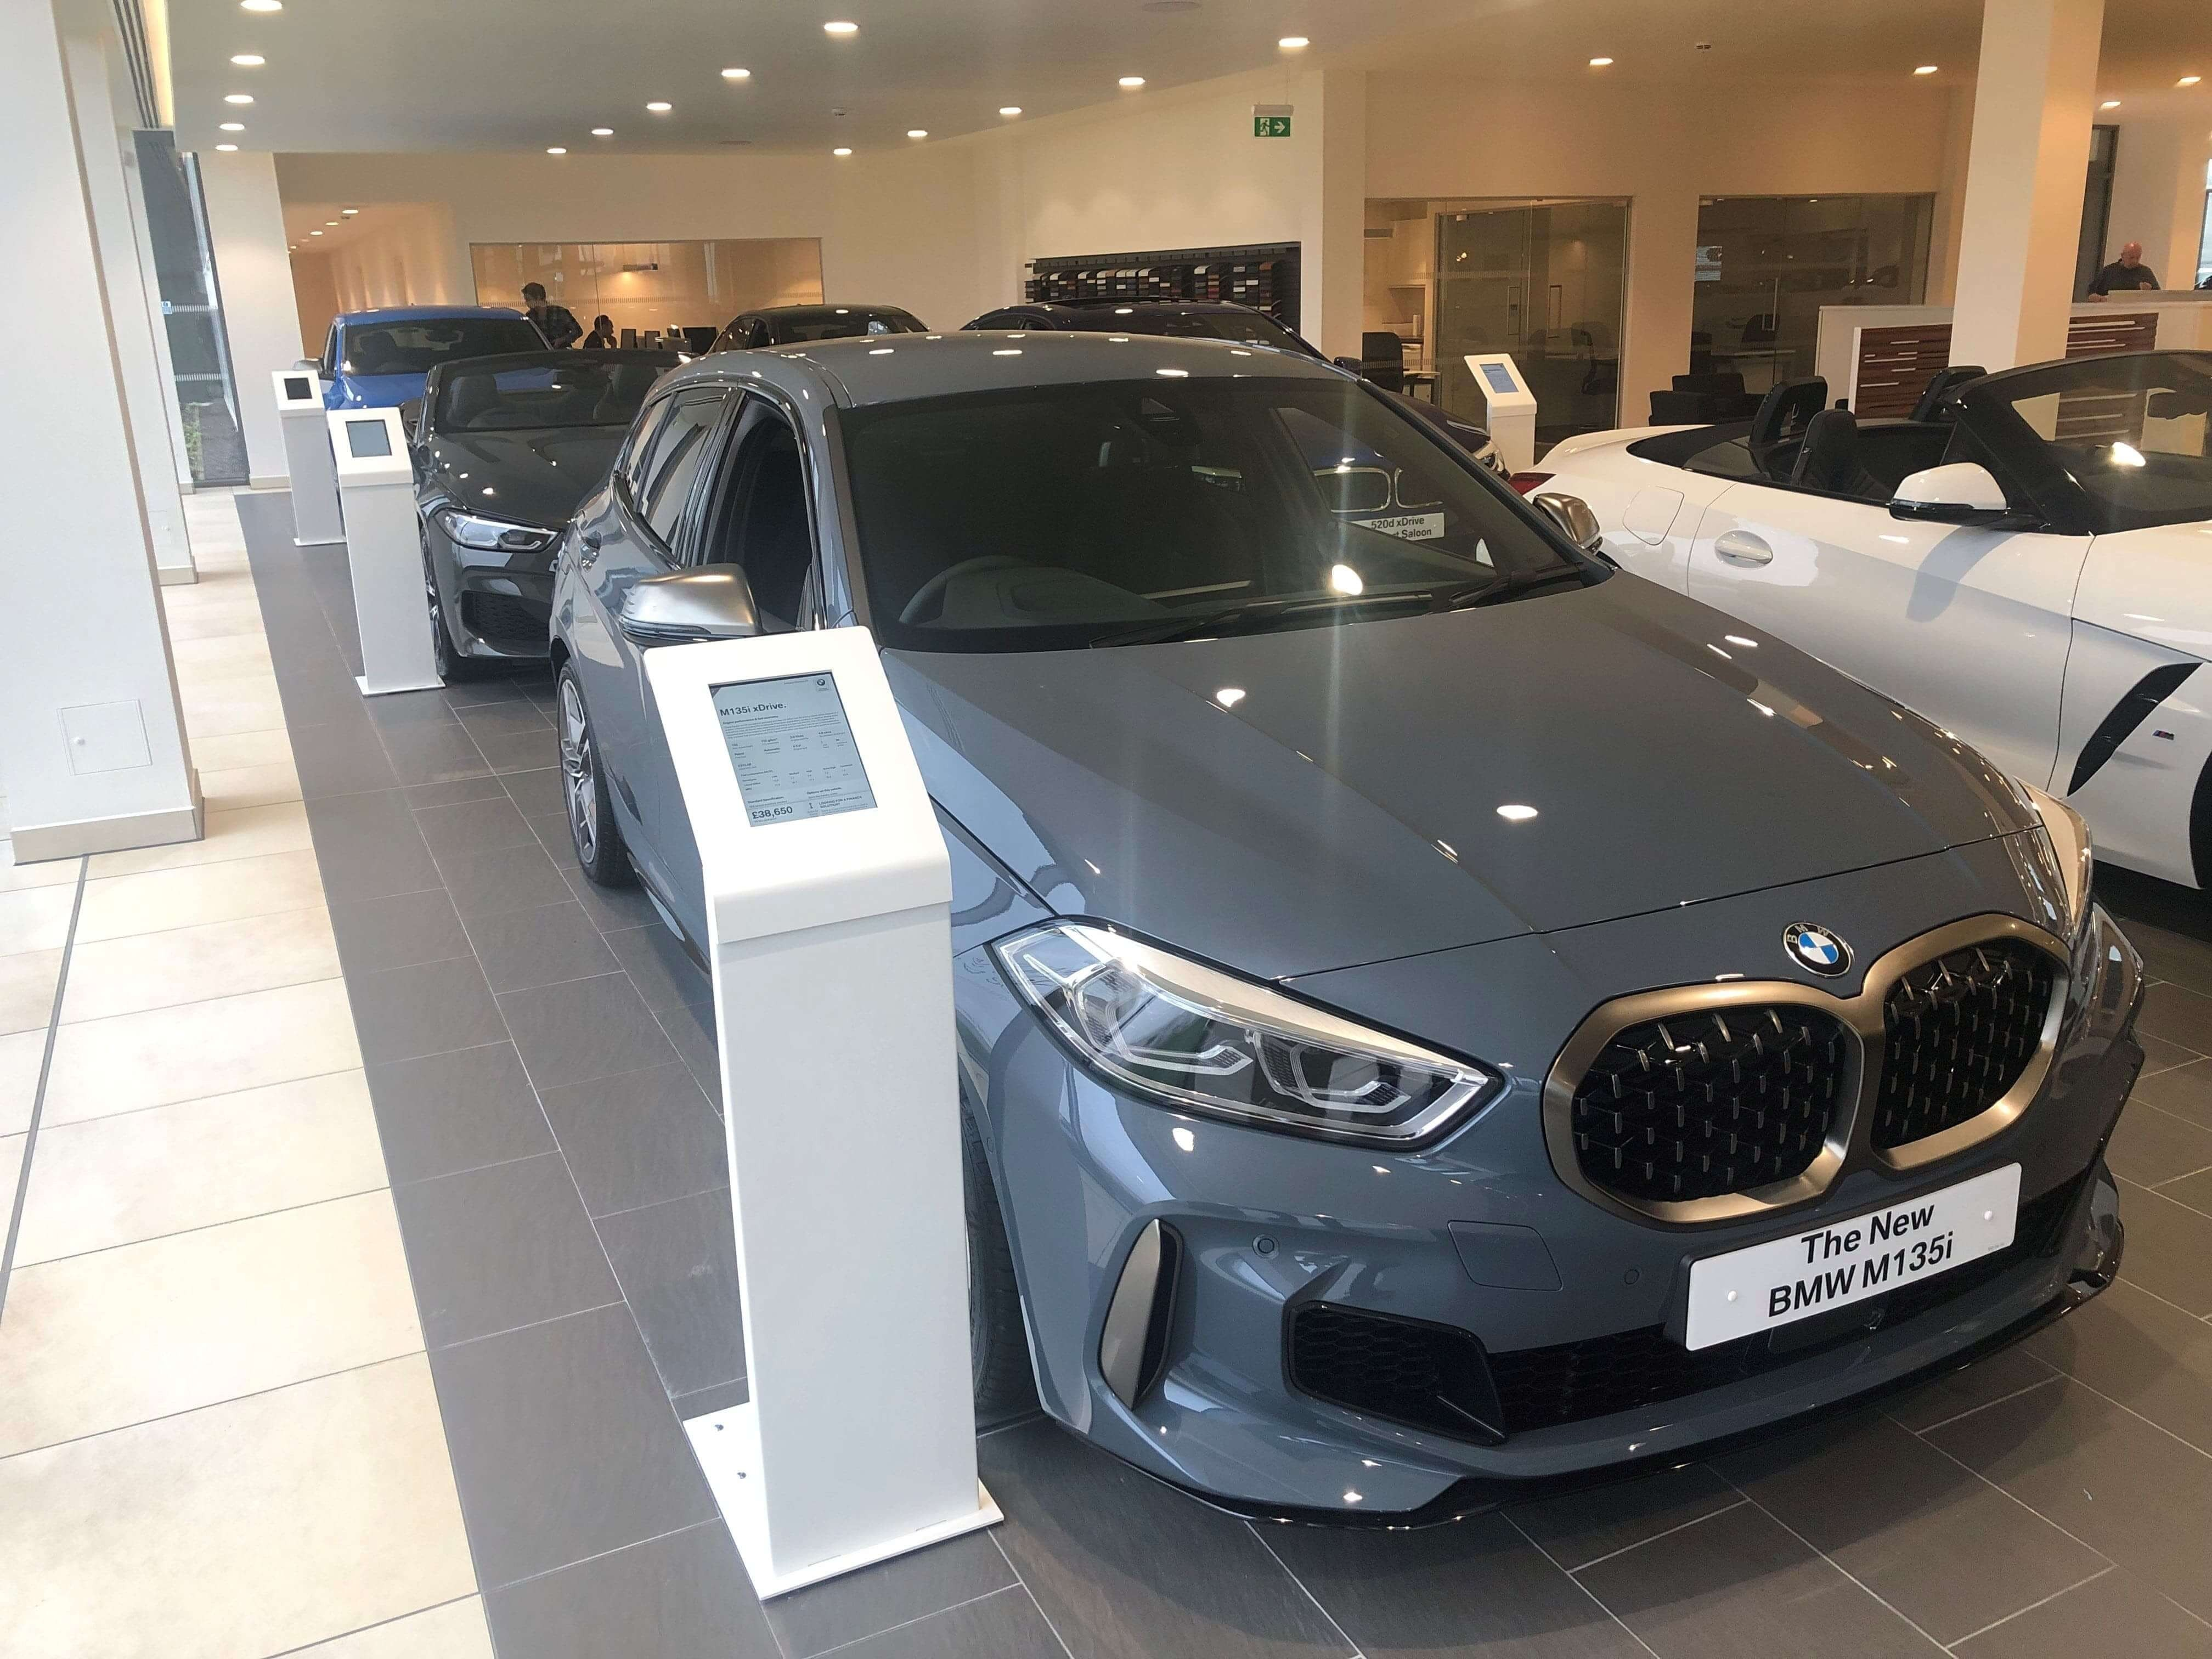 BMW 1 Series Launch at Williams BMW